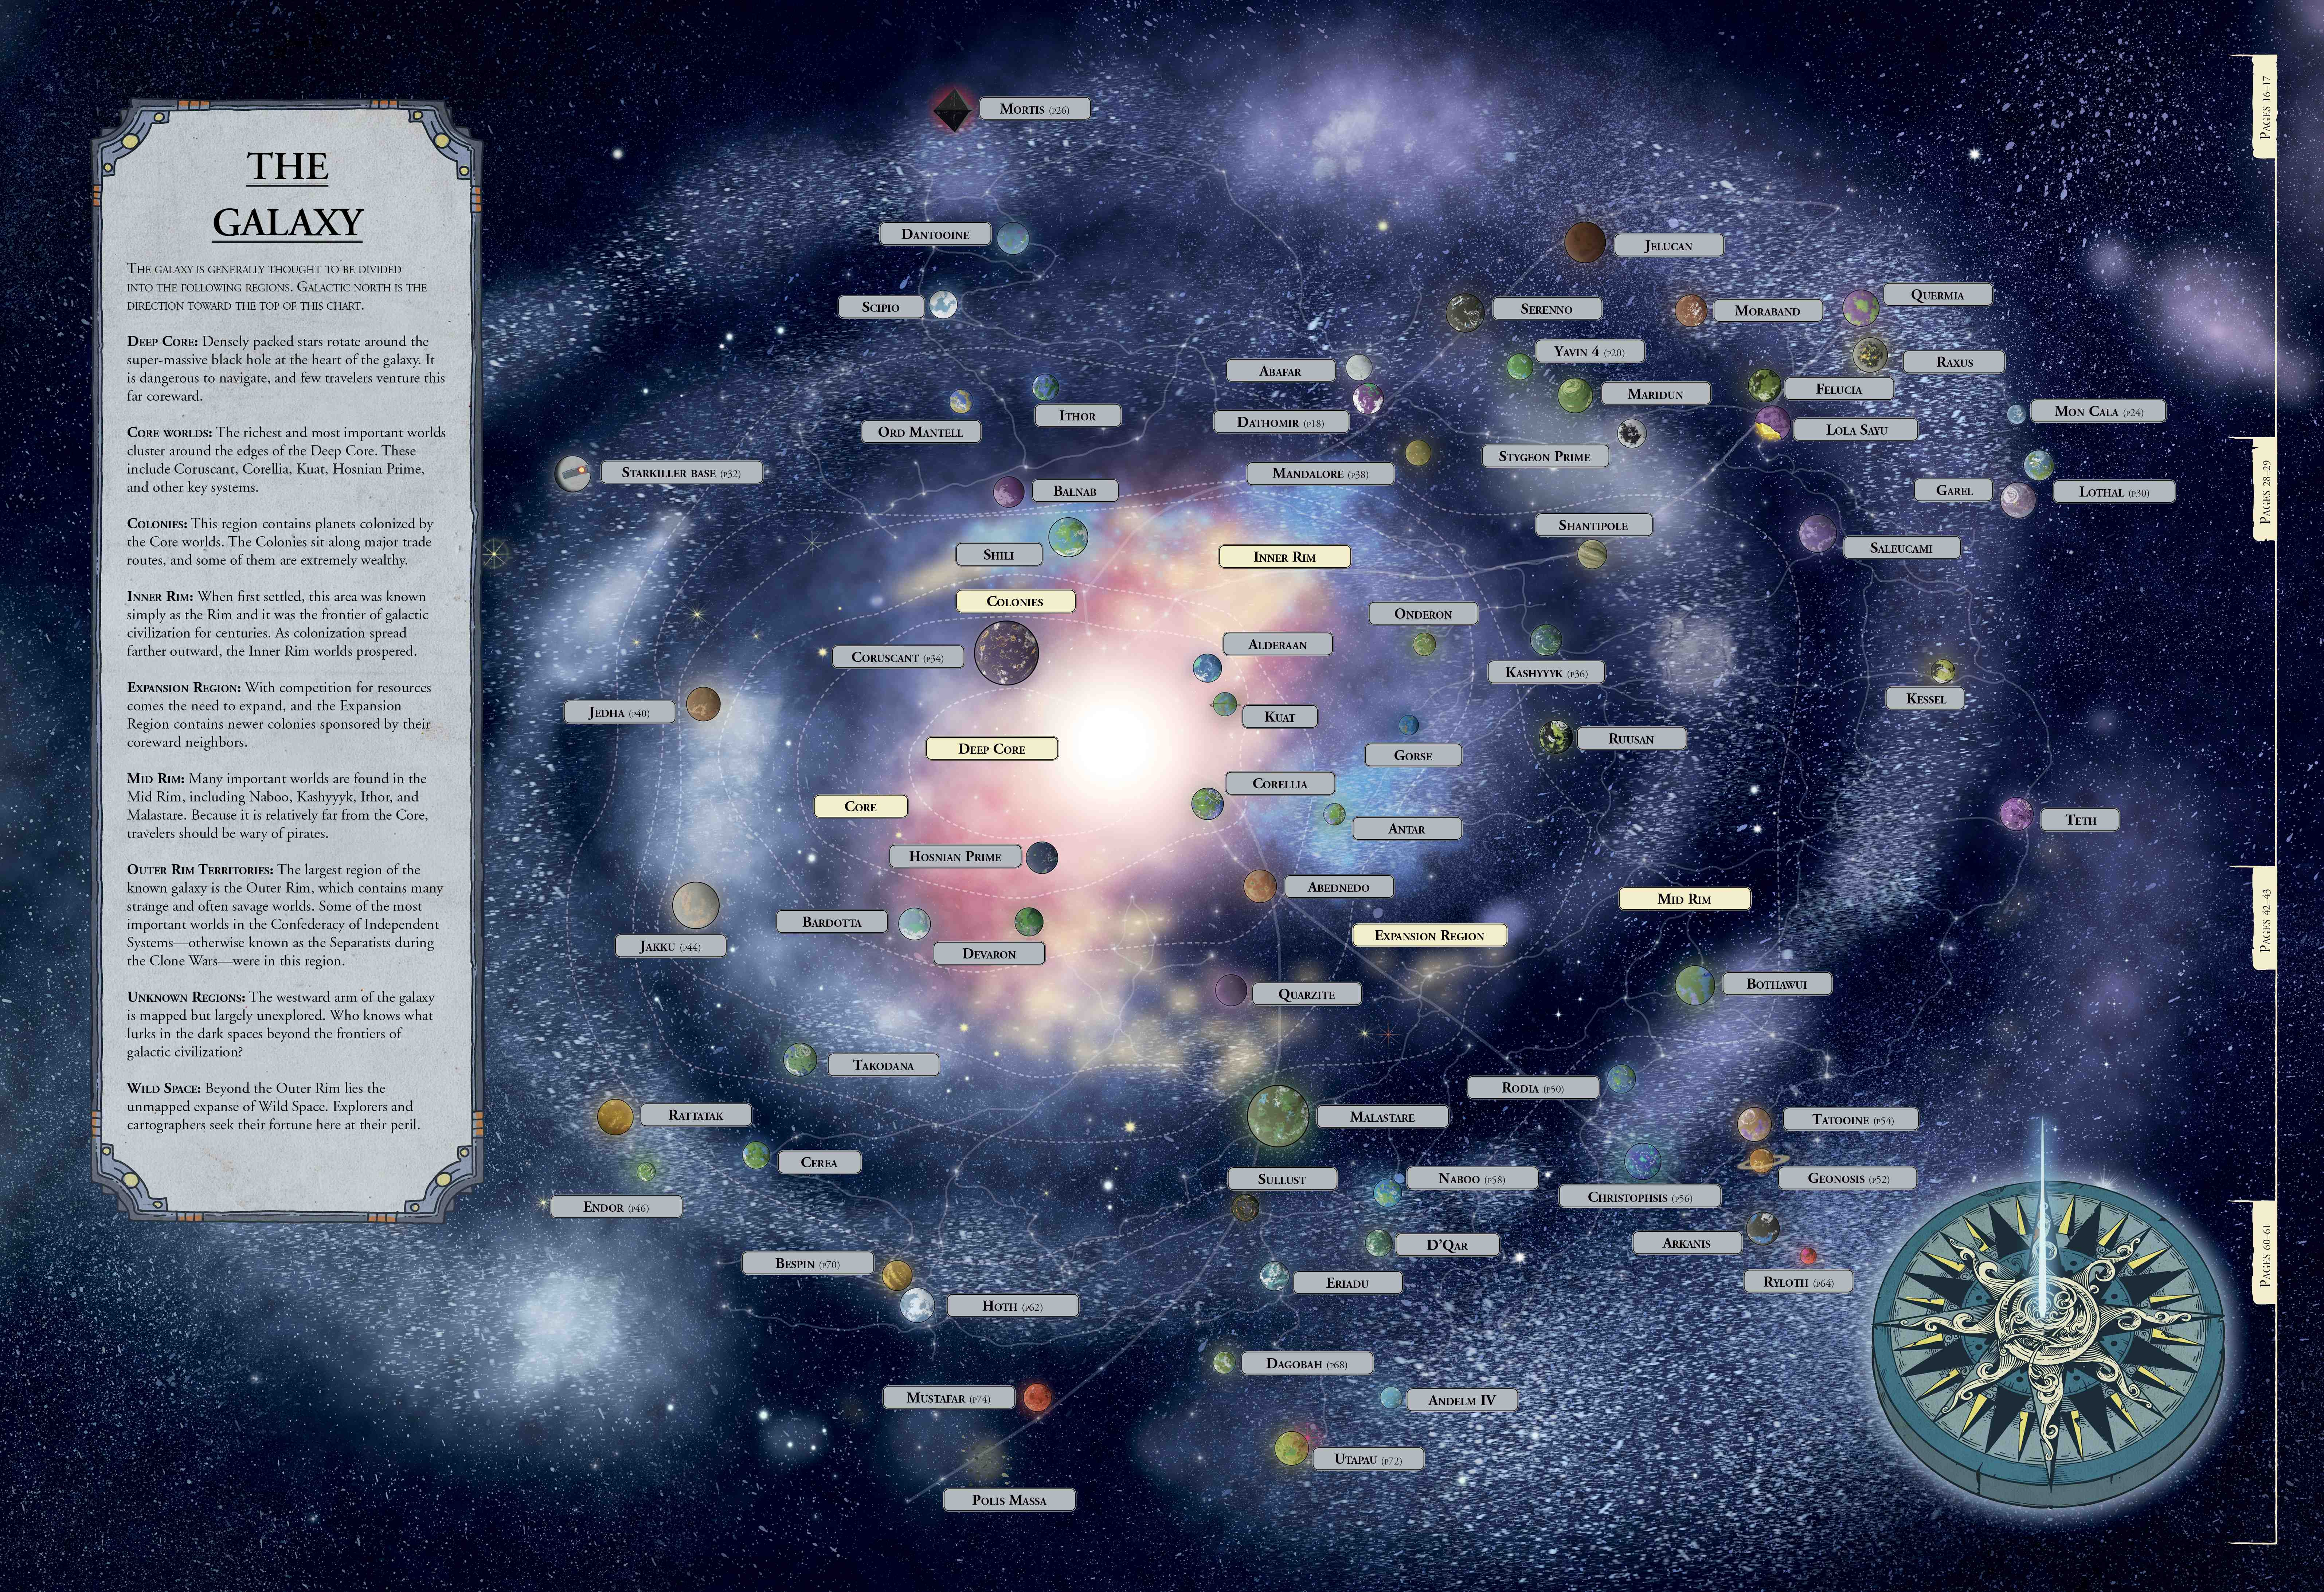 Aurebesh translations of galaxy map show the location of Ahchto